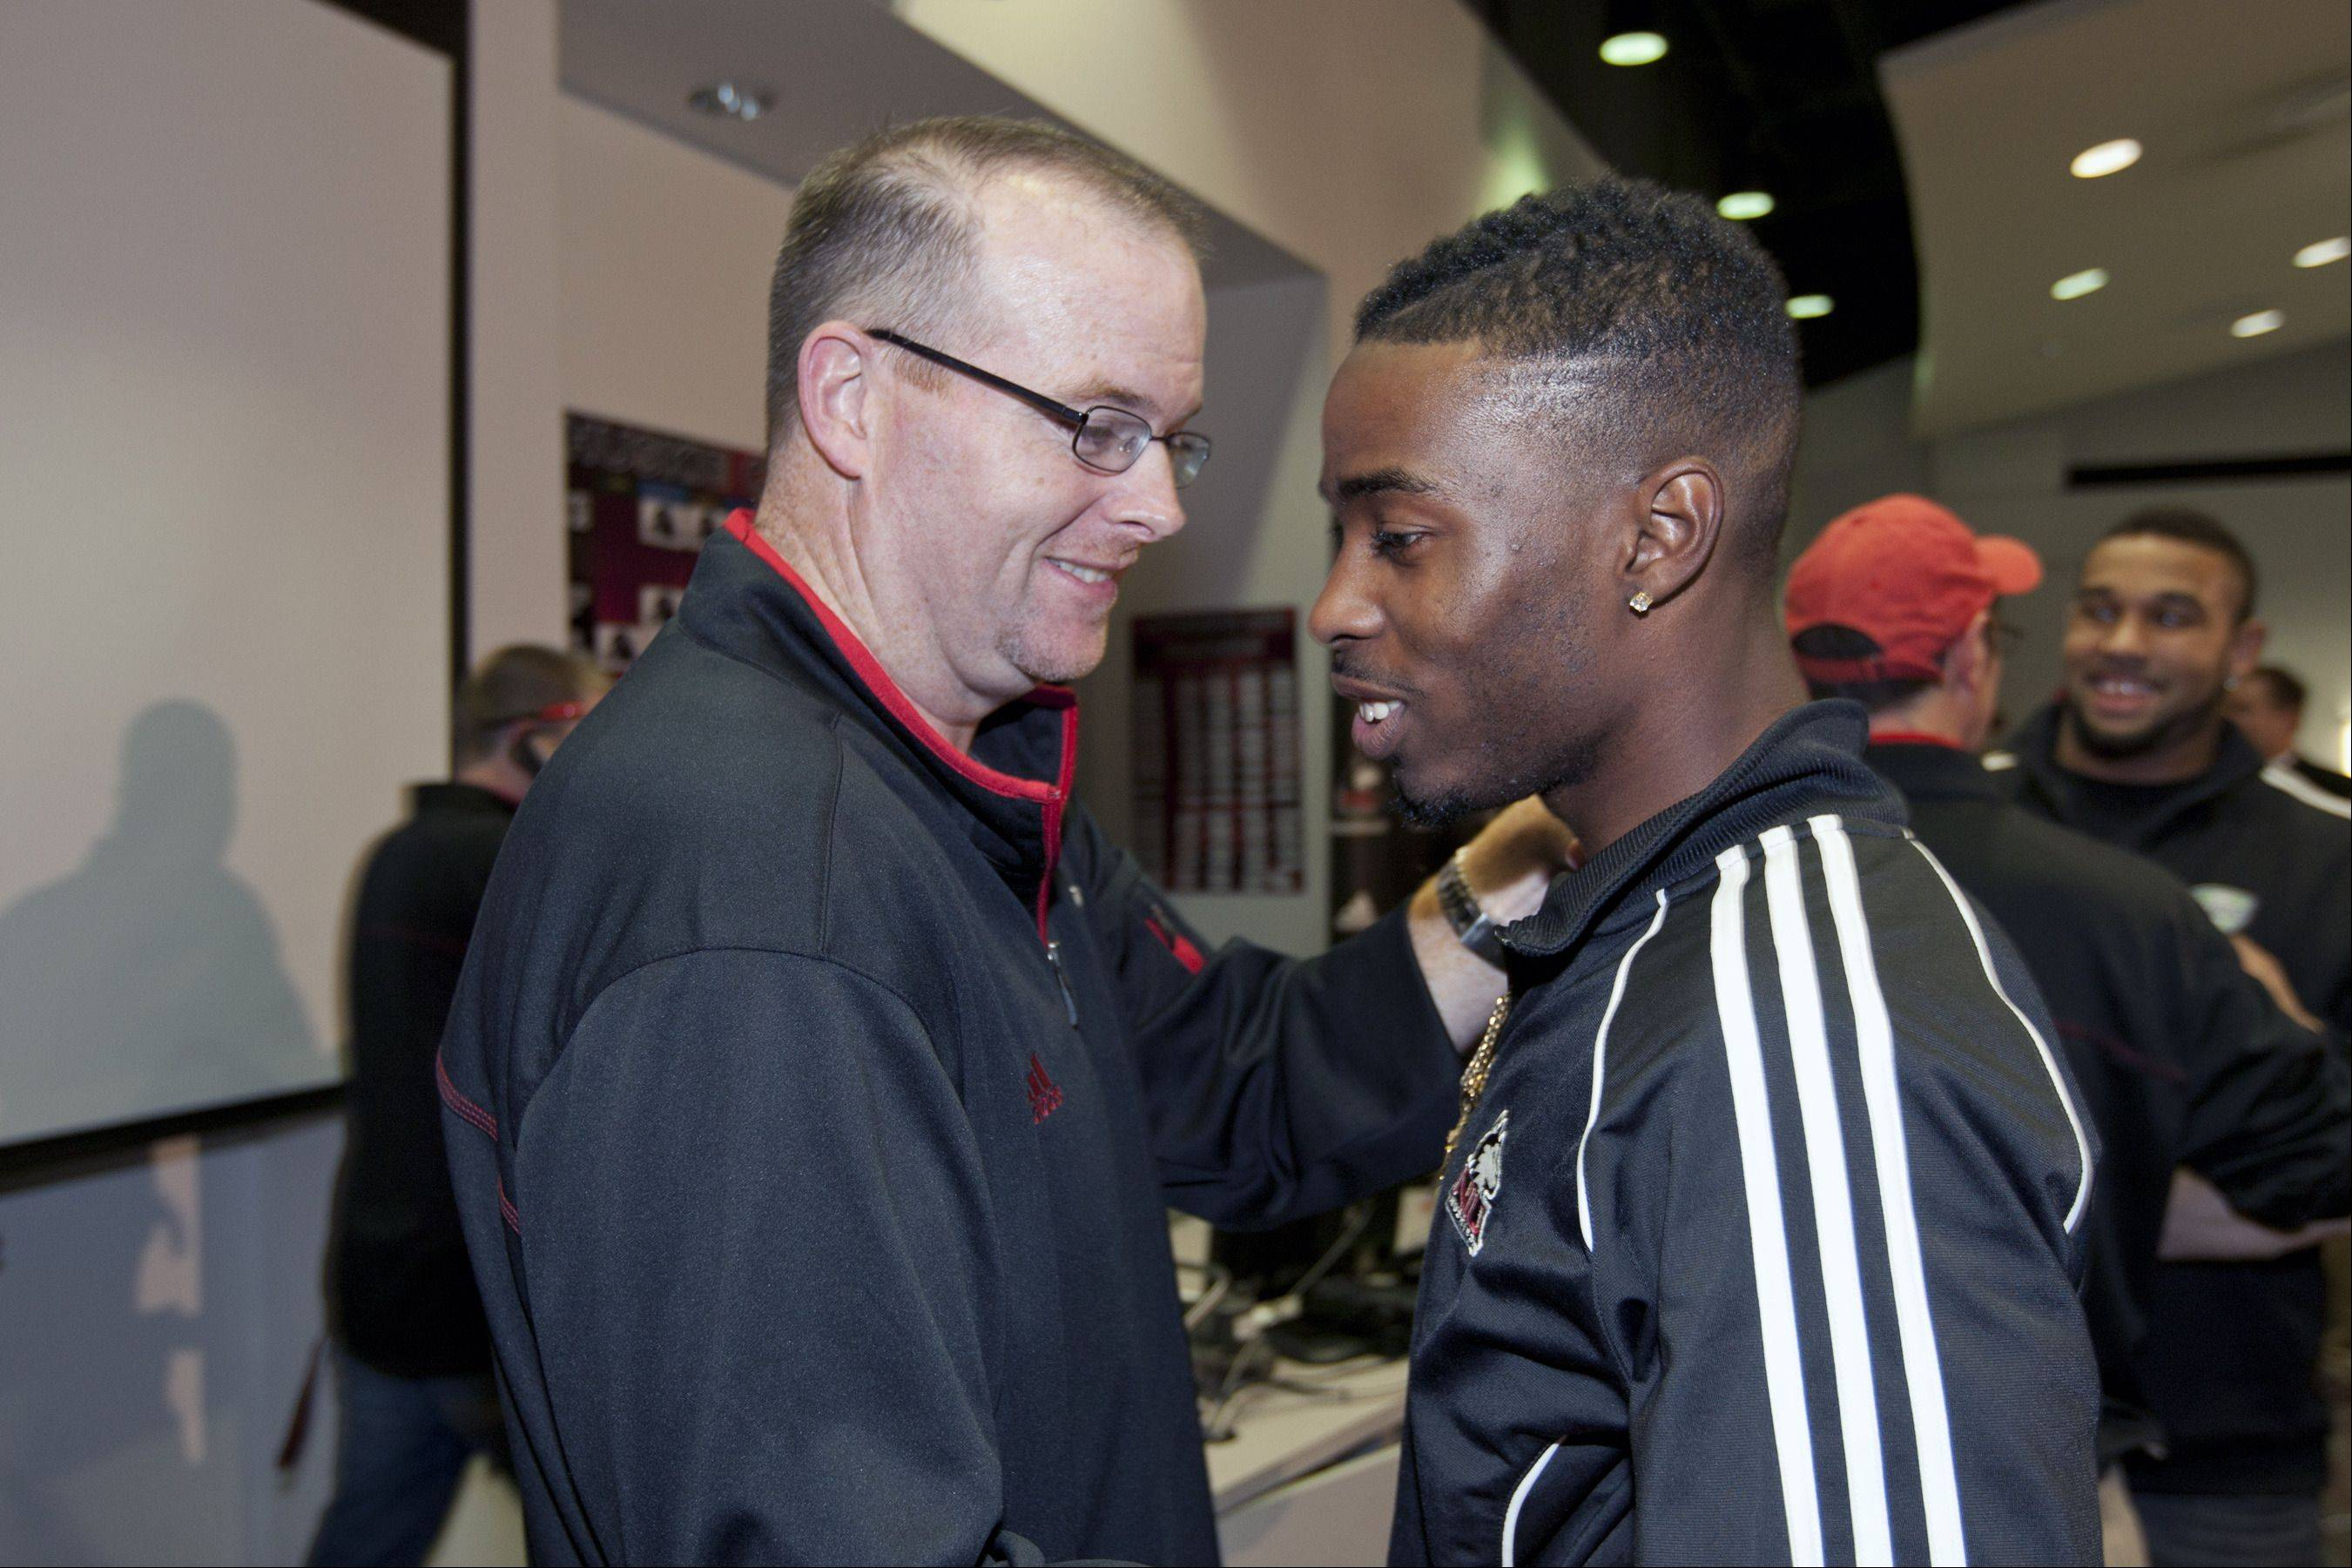 Coach Carey and Martel Moore react in DeKalb as the NIU Huskies learned of their Orange Bowl berth Sunday night.